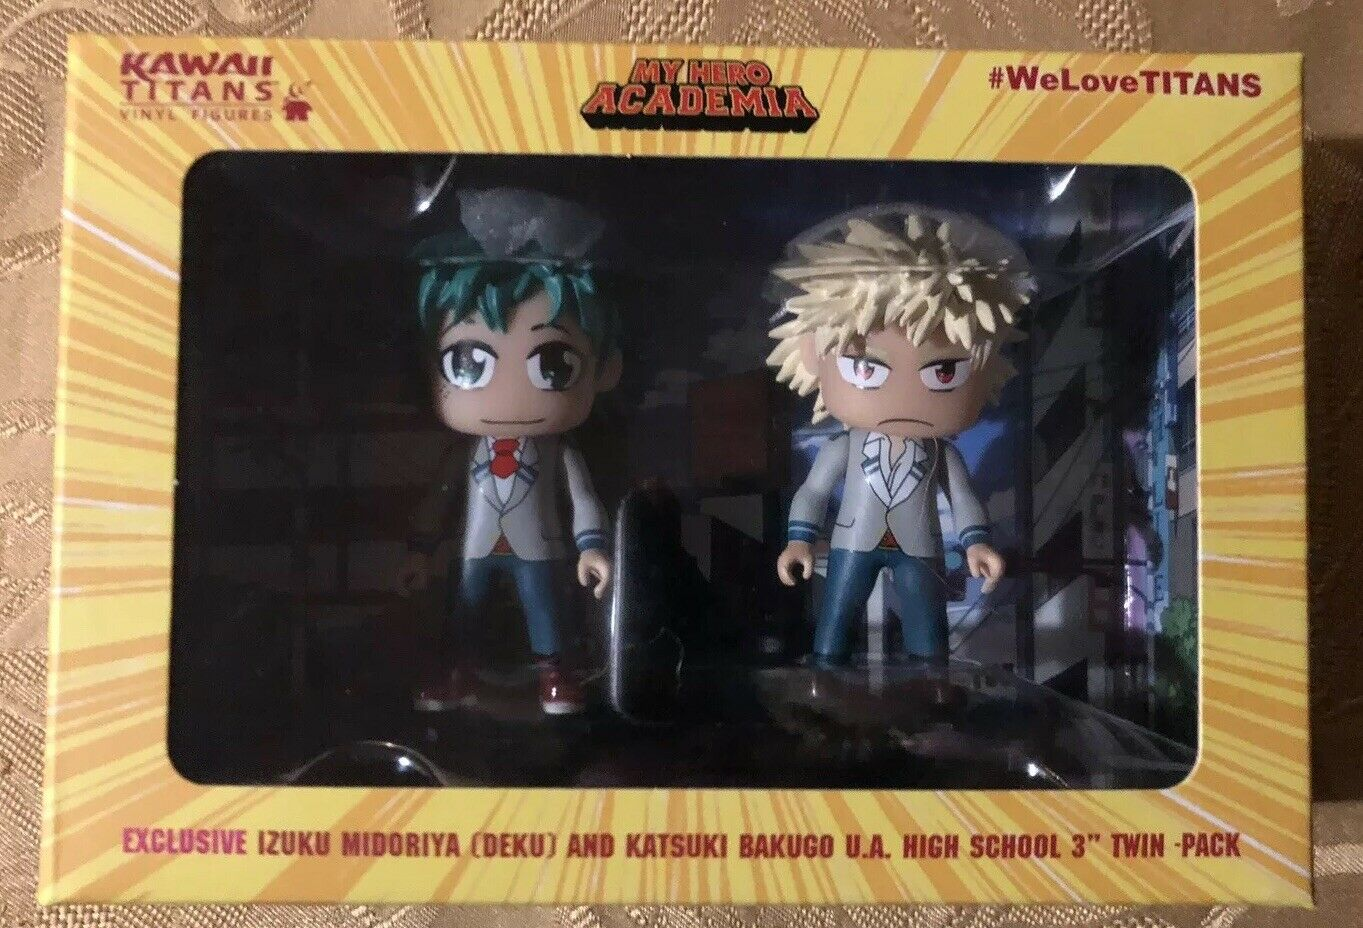 Izuku Deku Katsuki My Hero Academia NYCC 2019 Exclusive Titans Kawaii Figure Set